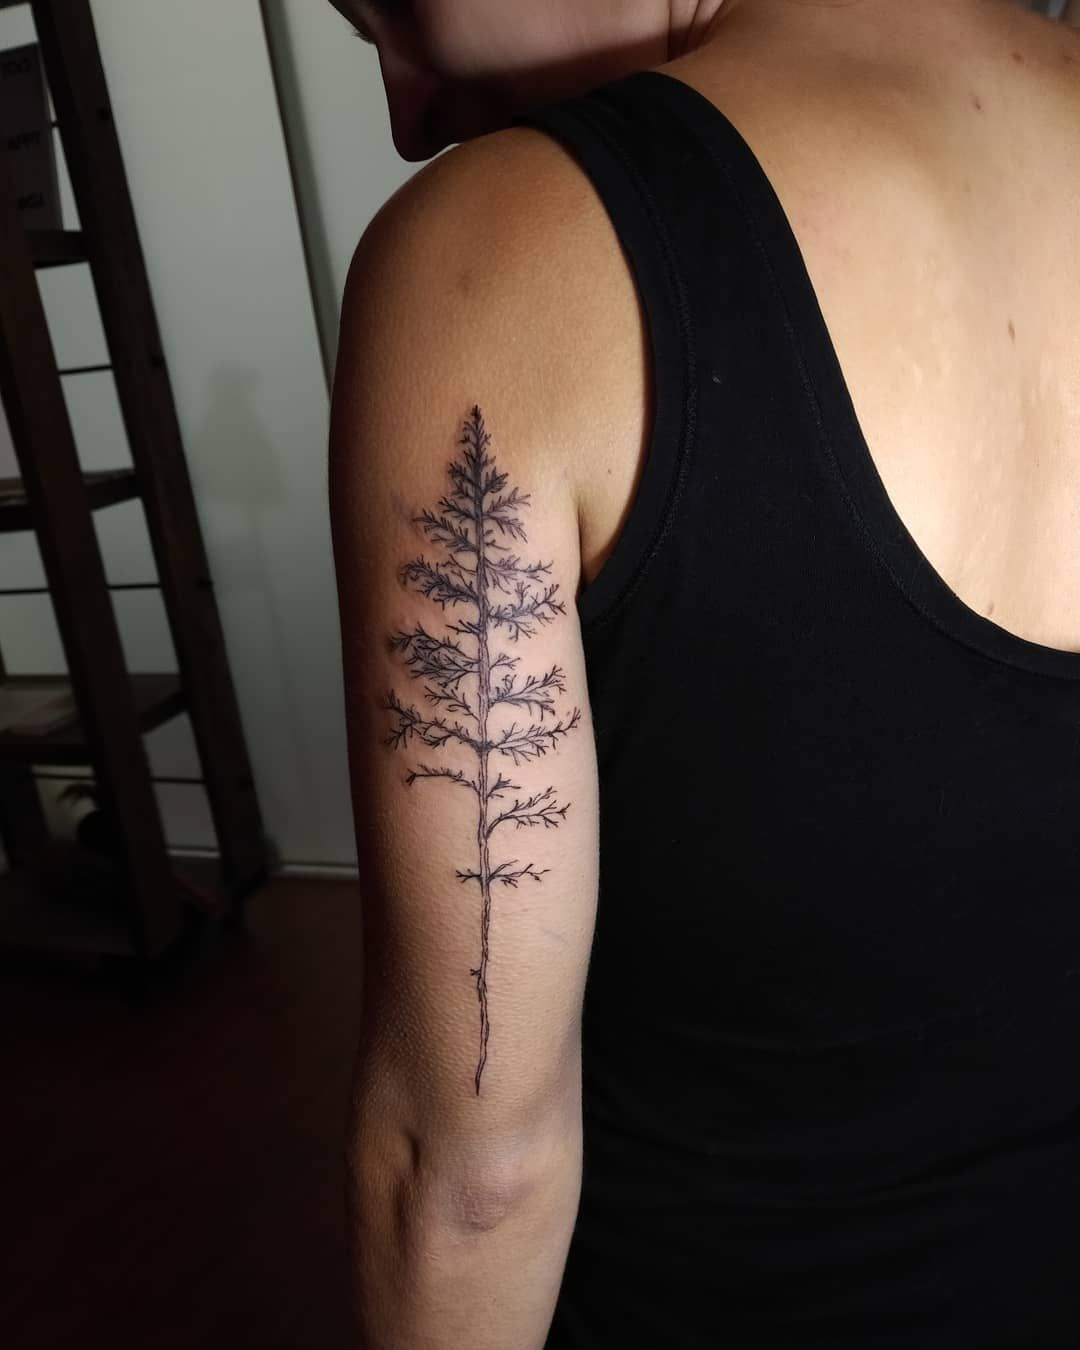 e8986864dcfdc Simple and Easy Pine Tree Tattoo – Designs & Meanings (2019) tattoos,tattoos  for women,tattoos for guys,tattoos for women small,tattoos for women half  ...